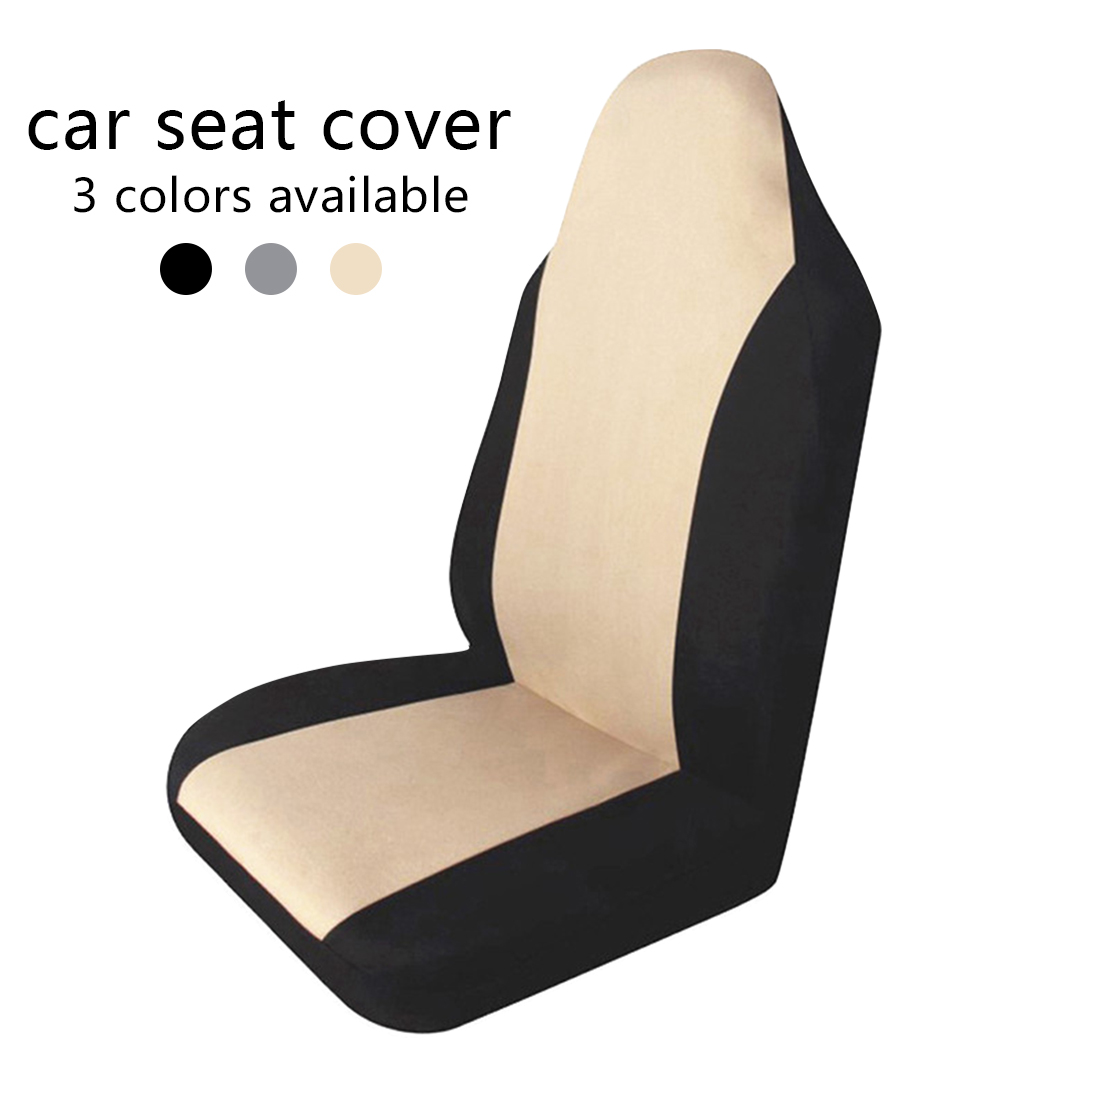 Dewtreelita Car Seat Cover One-piece Universal Seat Cushion Breathable Anti-Dust Auto Seat Cushion Mat Protective for Car SUV car seat cover truck suv auto universal leather cushion pad mat set for tata aria safari sumo indica nano indigo